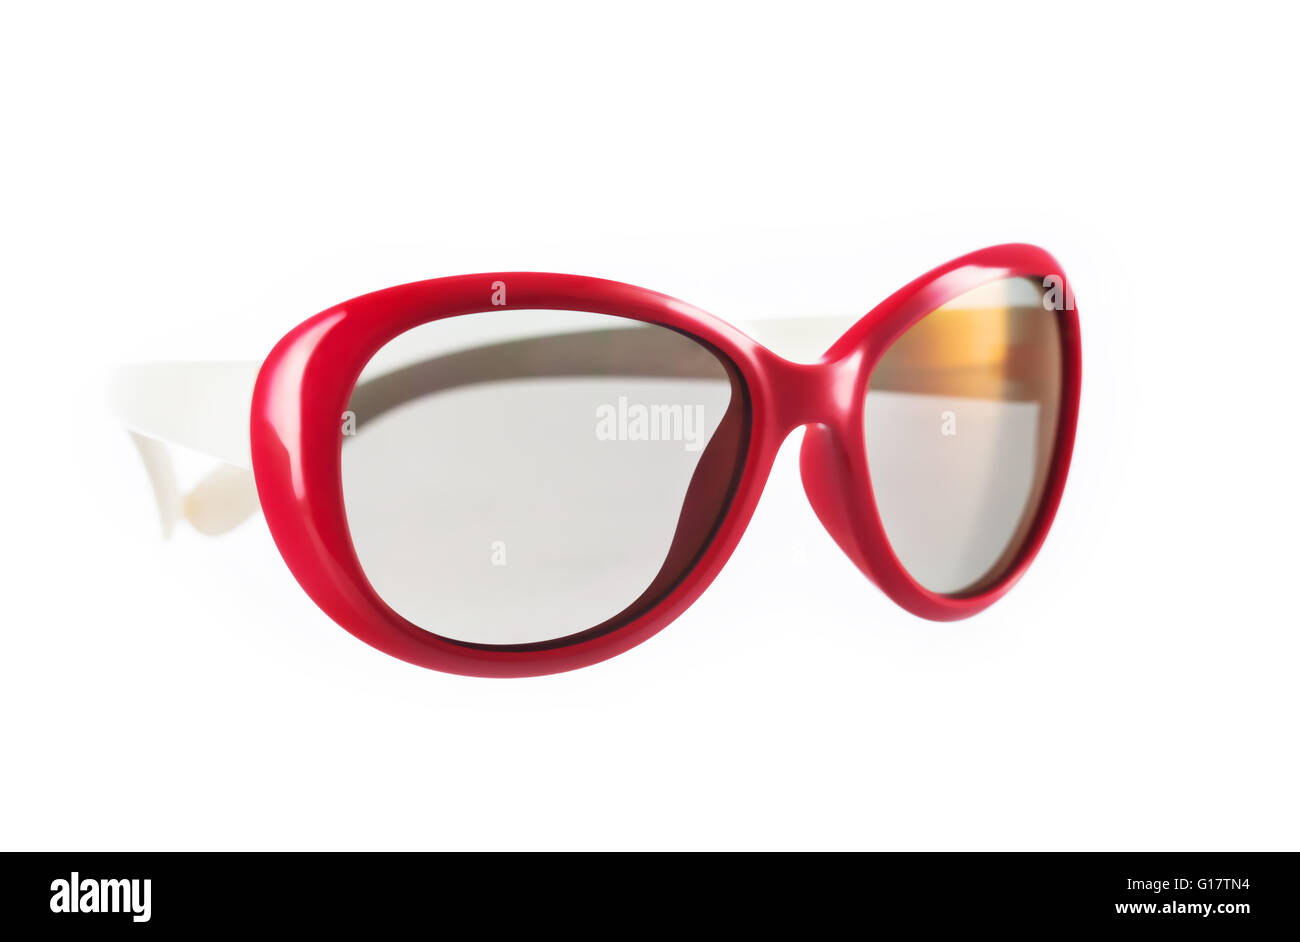 Red and white Eye Glasses. - Stock Image